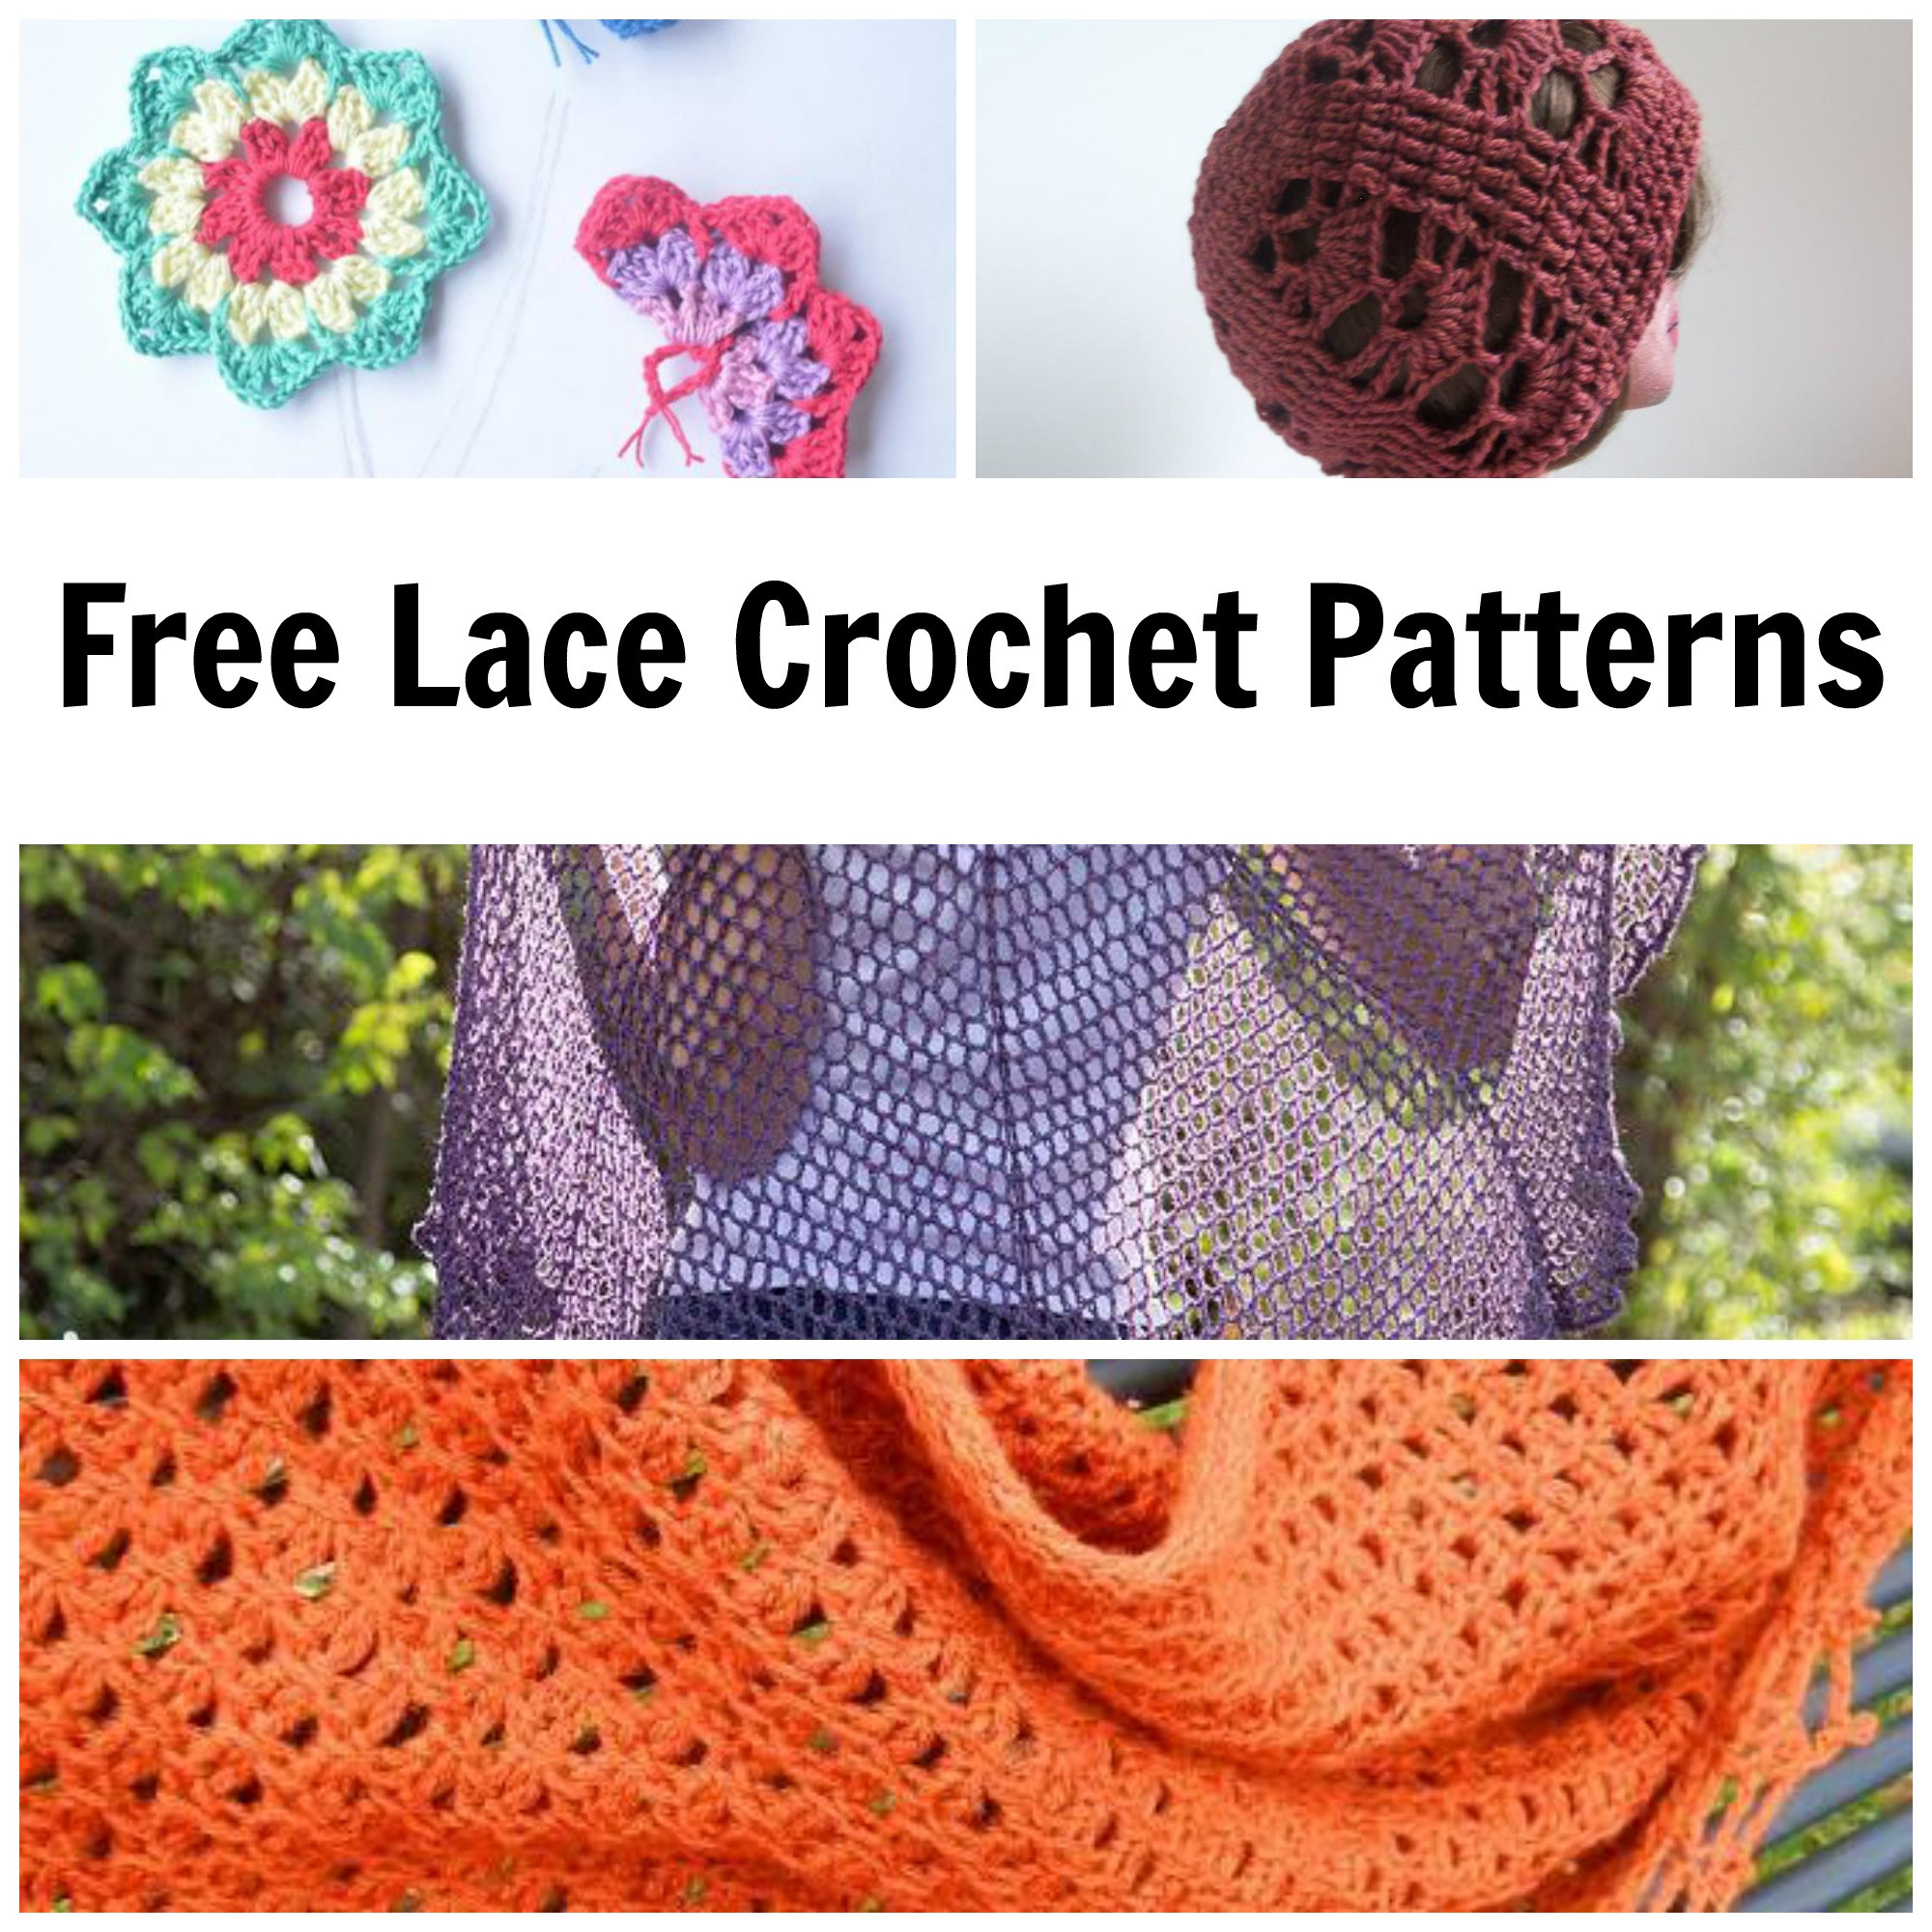 Crochet Lace Pattern Beautiful 7 Classic Beautiful Free Lace Crochet Patterns Of Gorgeous 50 Photos Crochet Lace Pattern